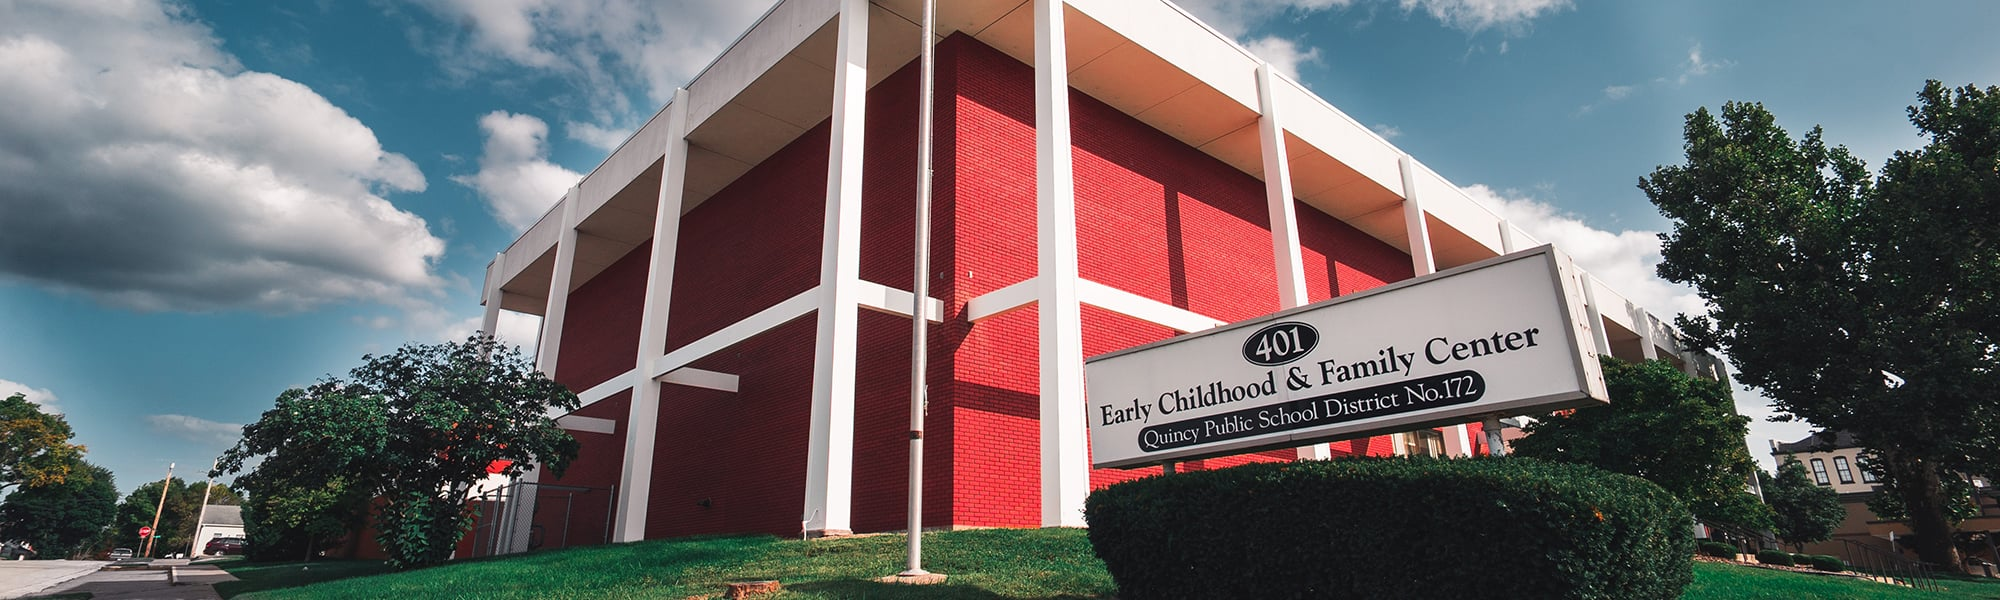 Early Childhood & Family Center